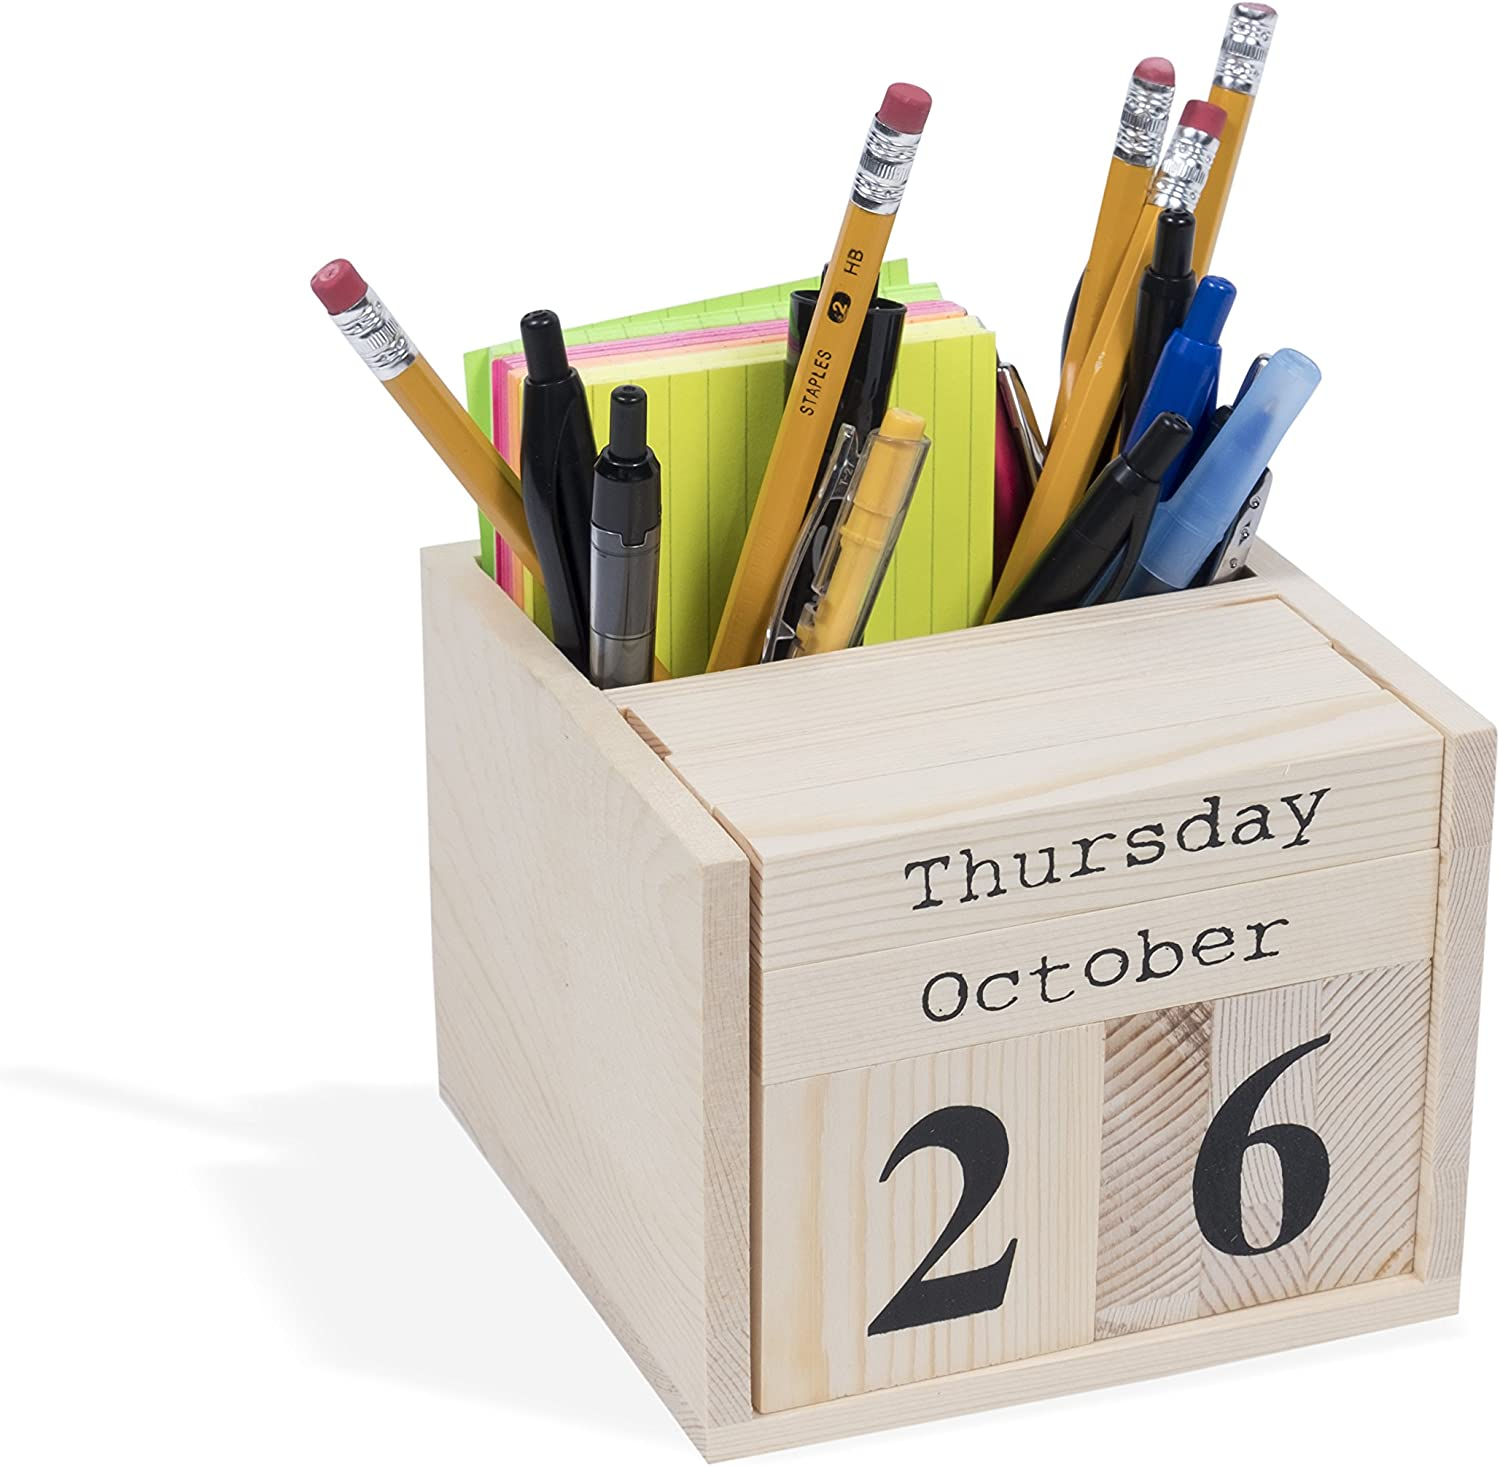 Sacramento Solid Maple Wood Calendar Blocks with Phone and Pen Stand for Office Desk